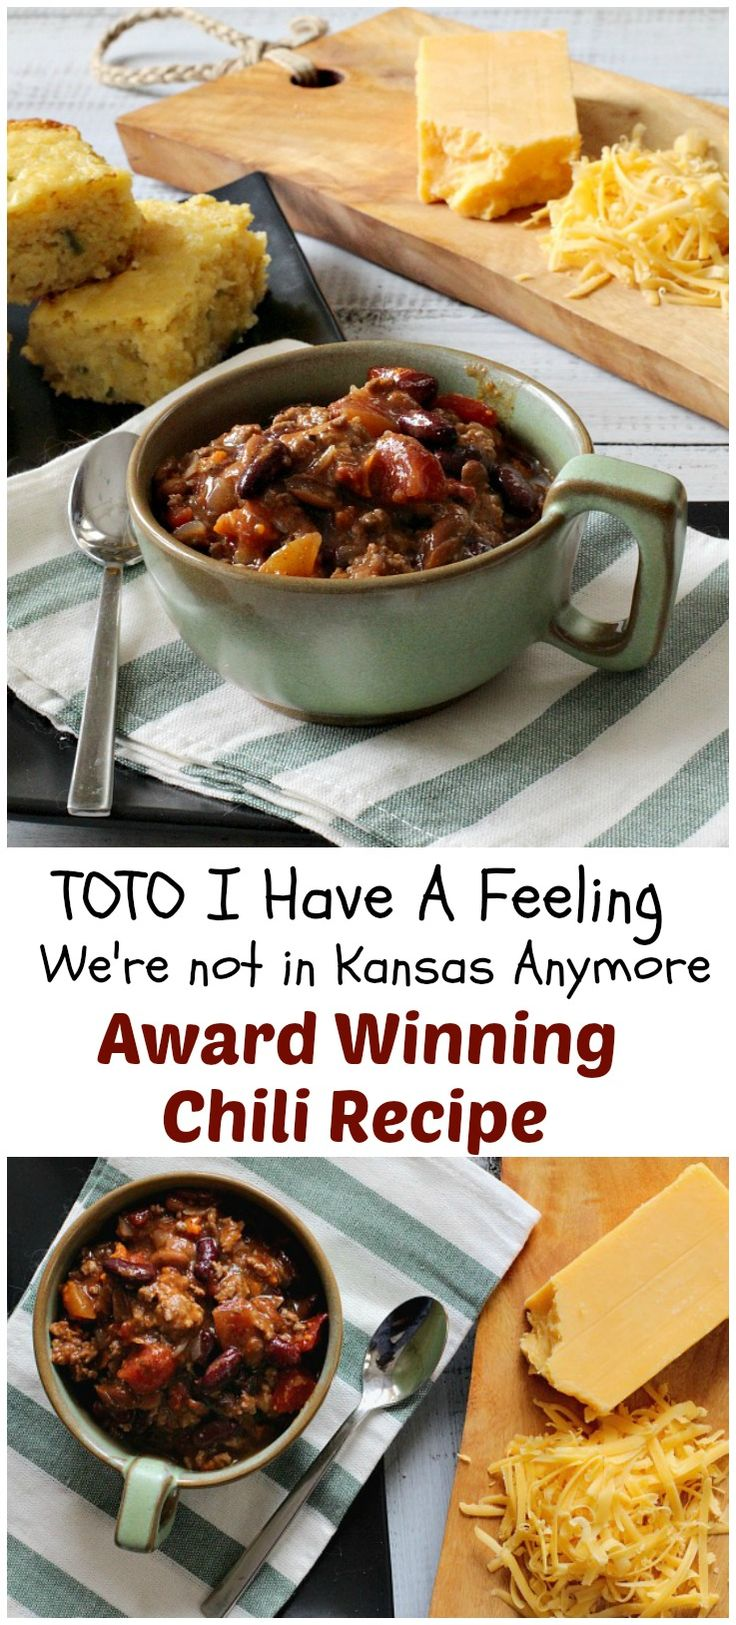 A combination of my Kansas family chili recipe with some unique additions, this simple beef and bean chili recipe became an award winning chili recipe in Colorado.  via @lannisam